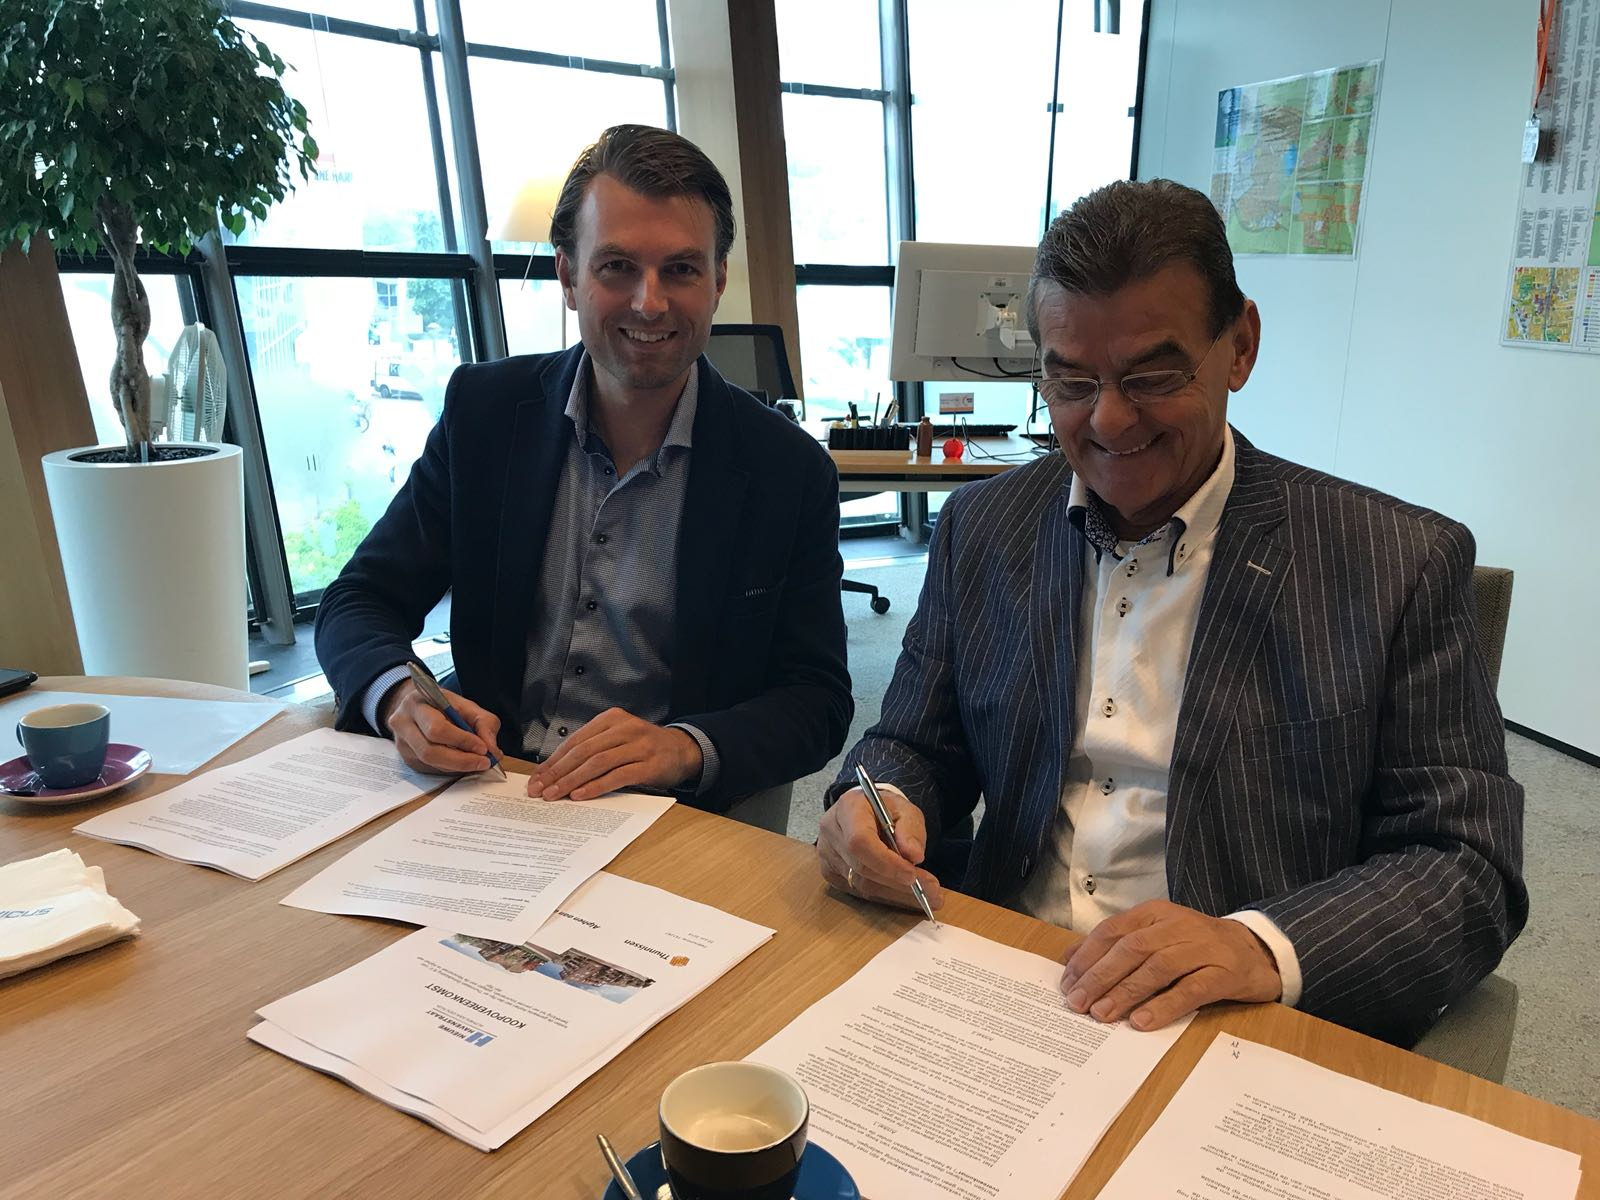 Ondertekening koopovereenkomst Havenstraat in Alphen aan den Rijn